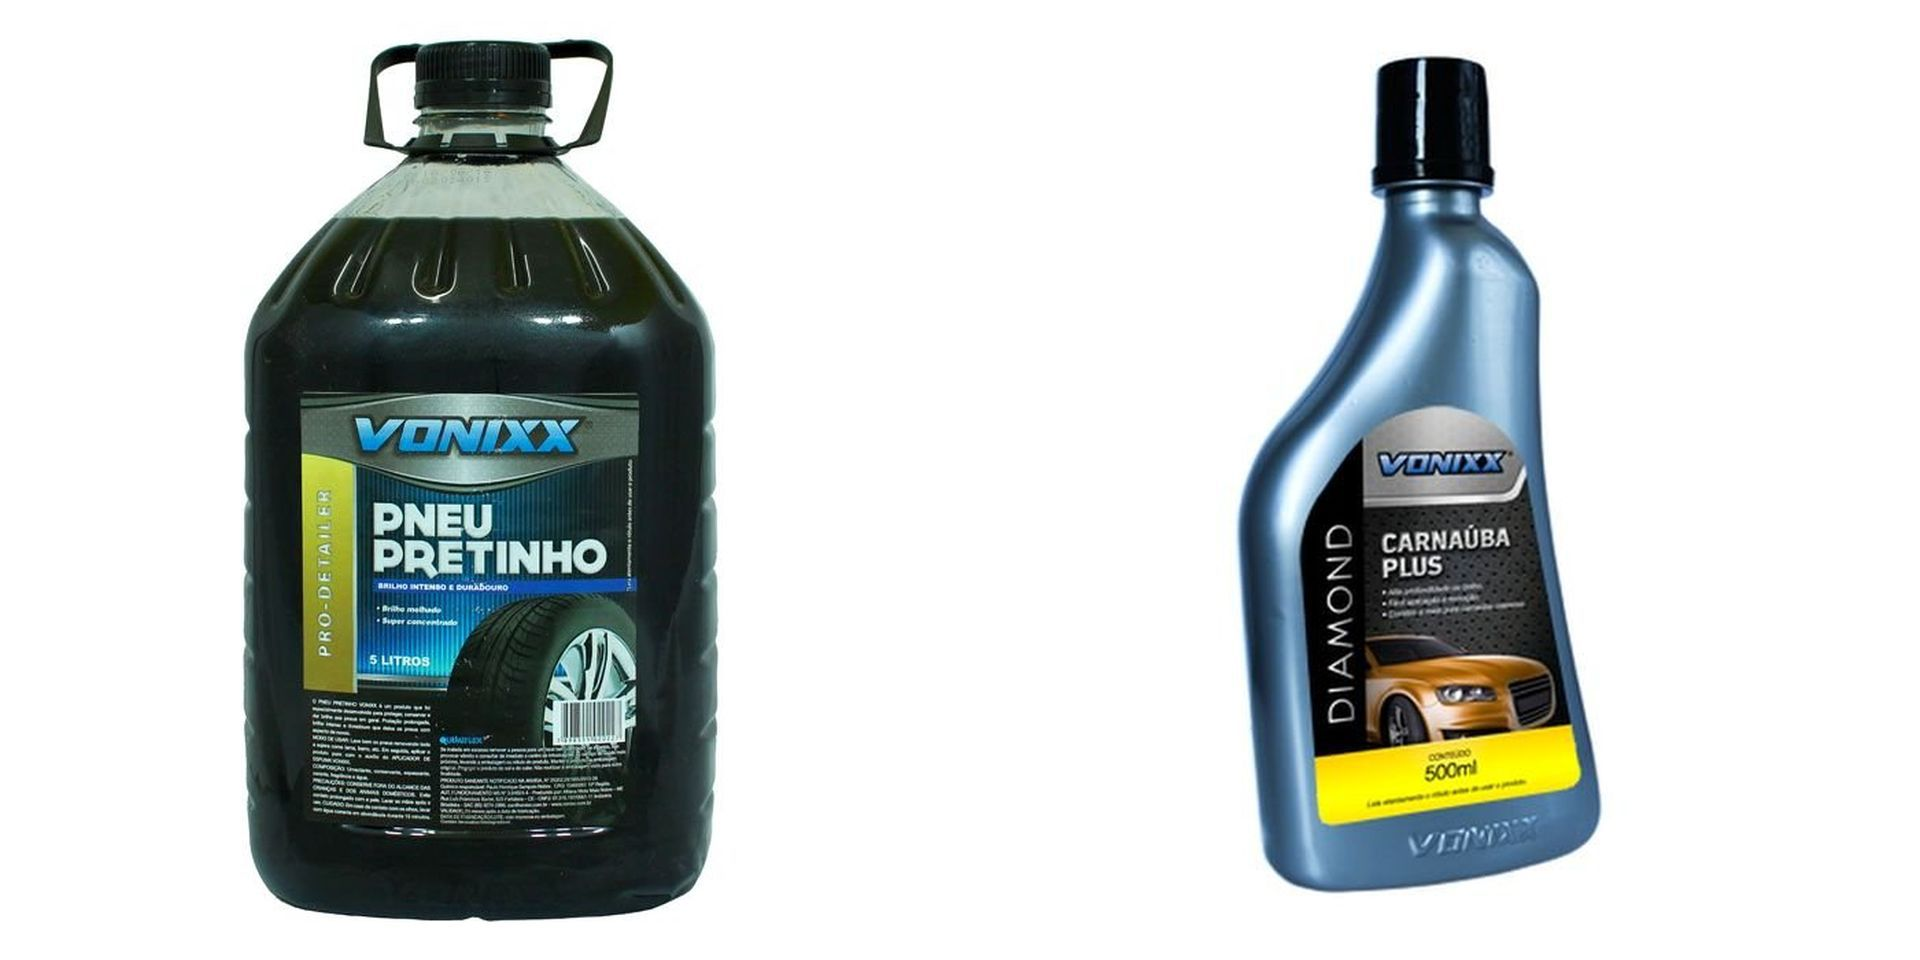 kit Pneu Pretinho+Cera de Carnauba Plus Diamond